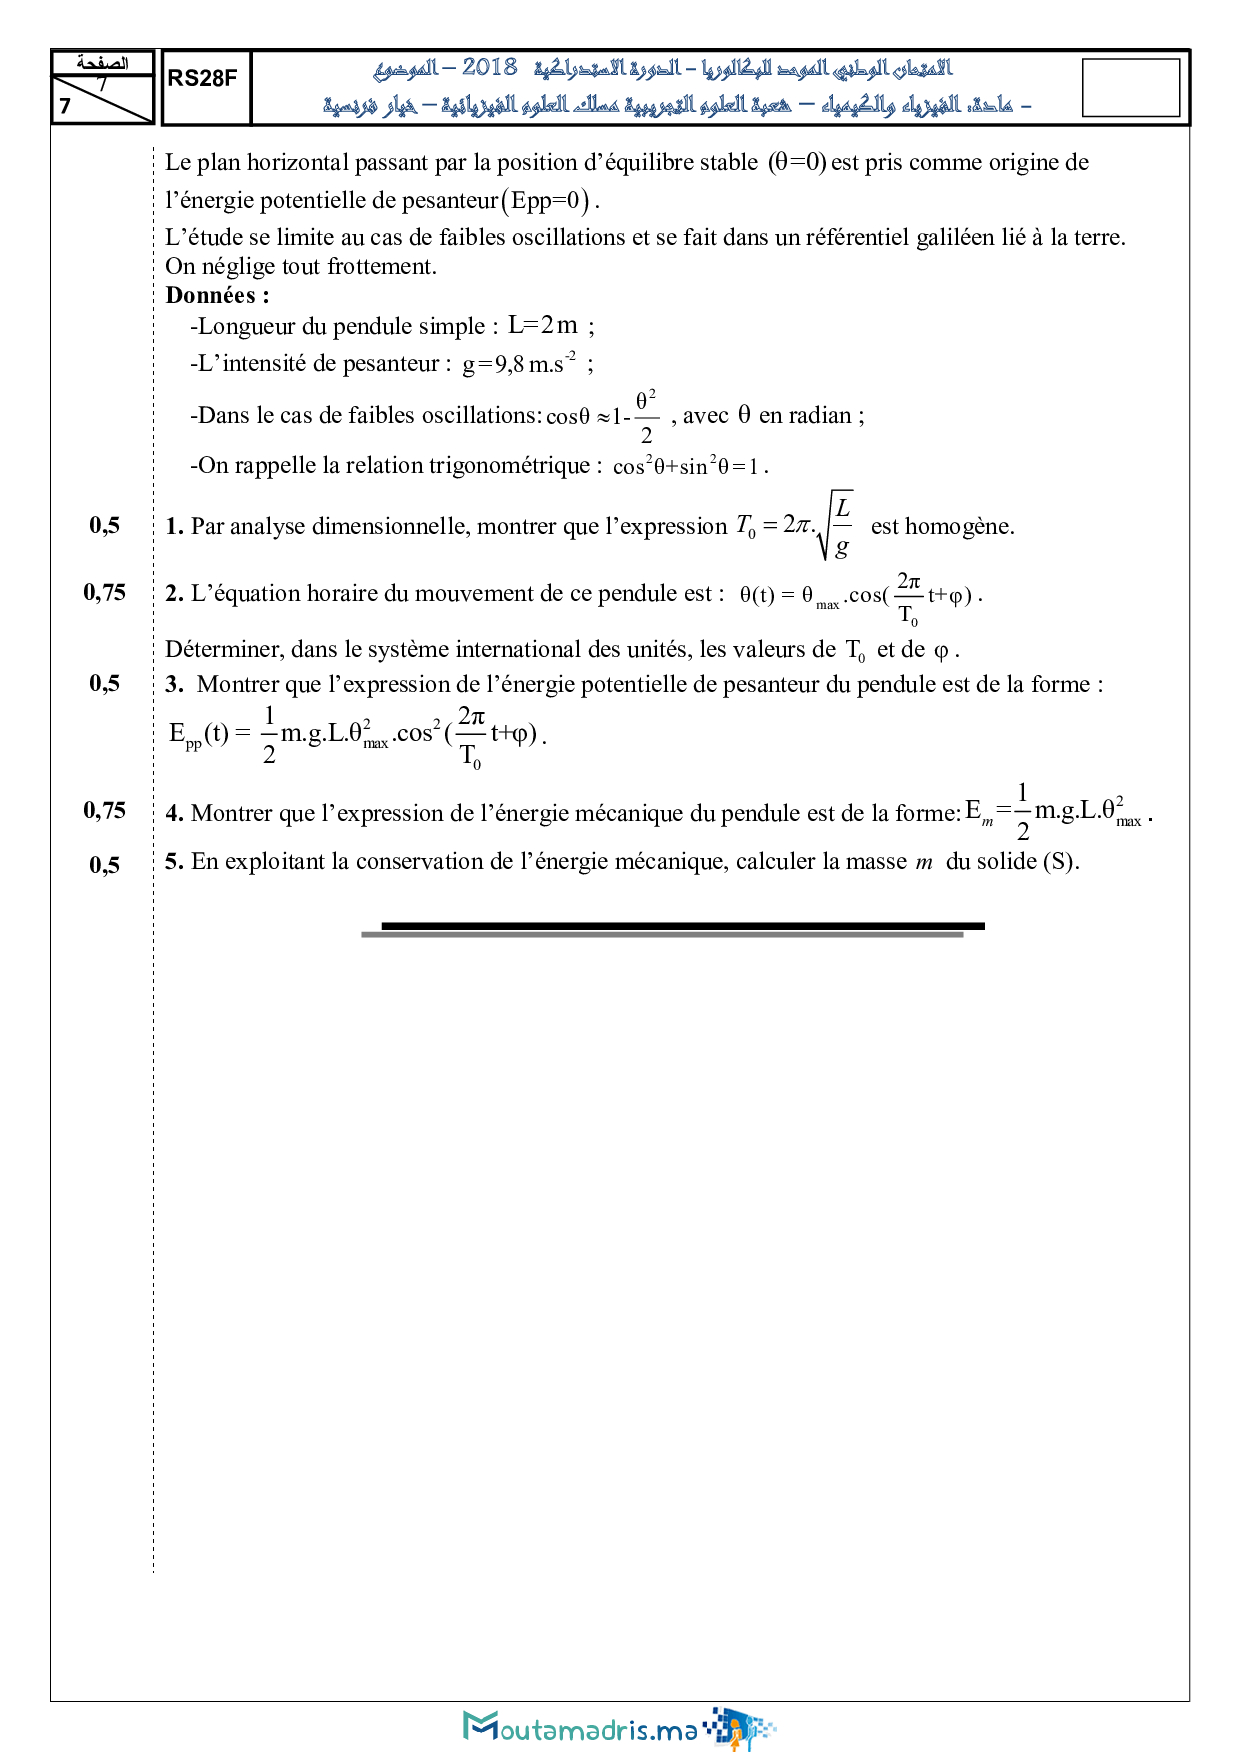 Examen National Physique-Chimie SPC 2018 Rattrapage - Sujet7.jpg